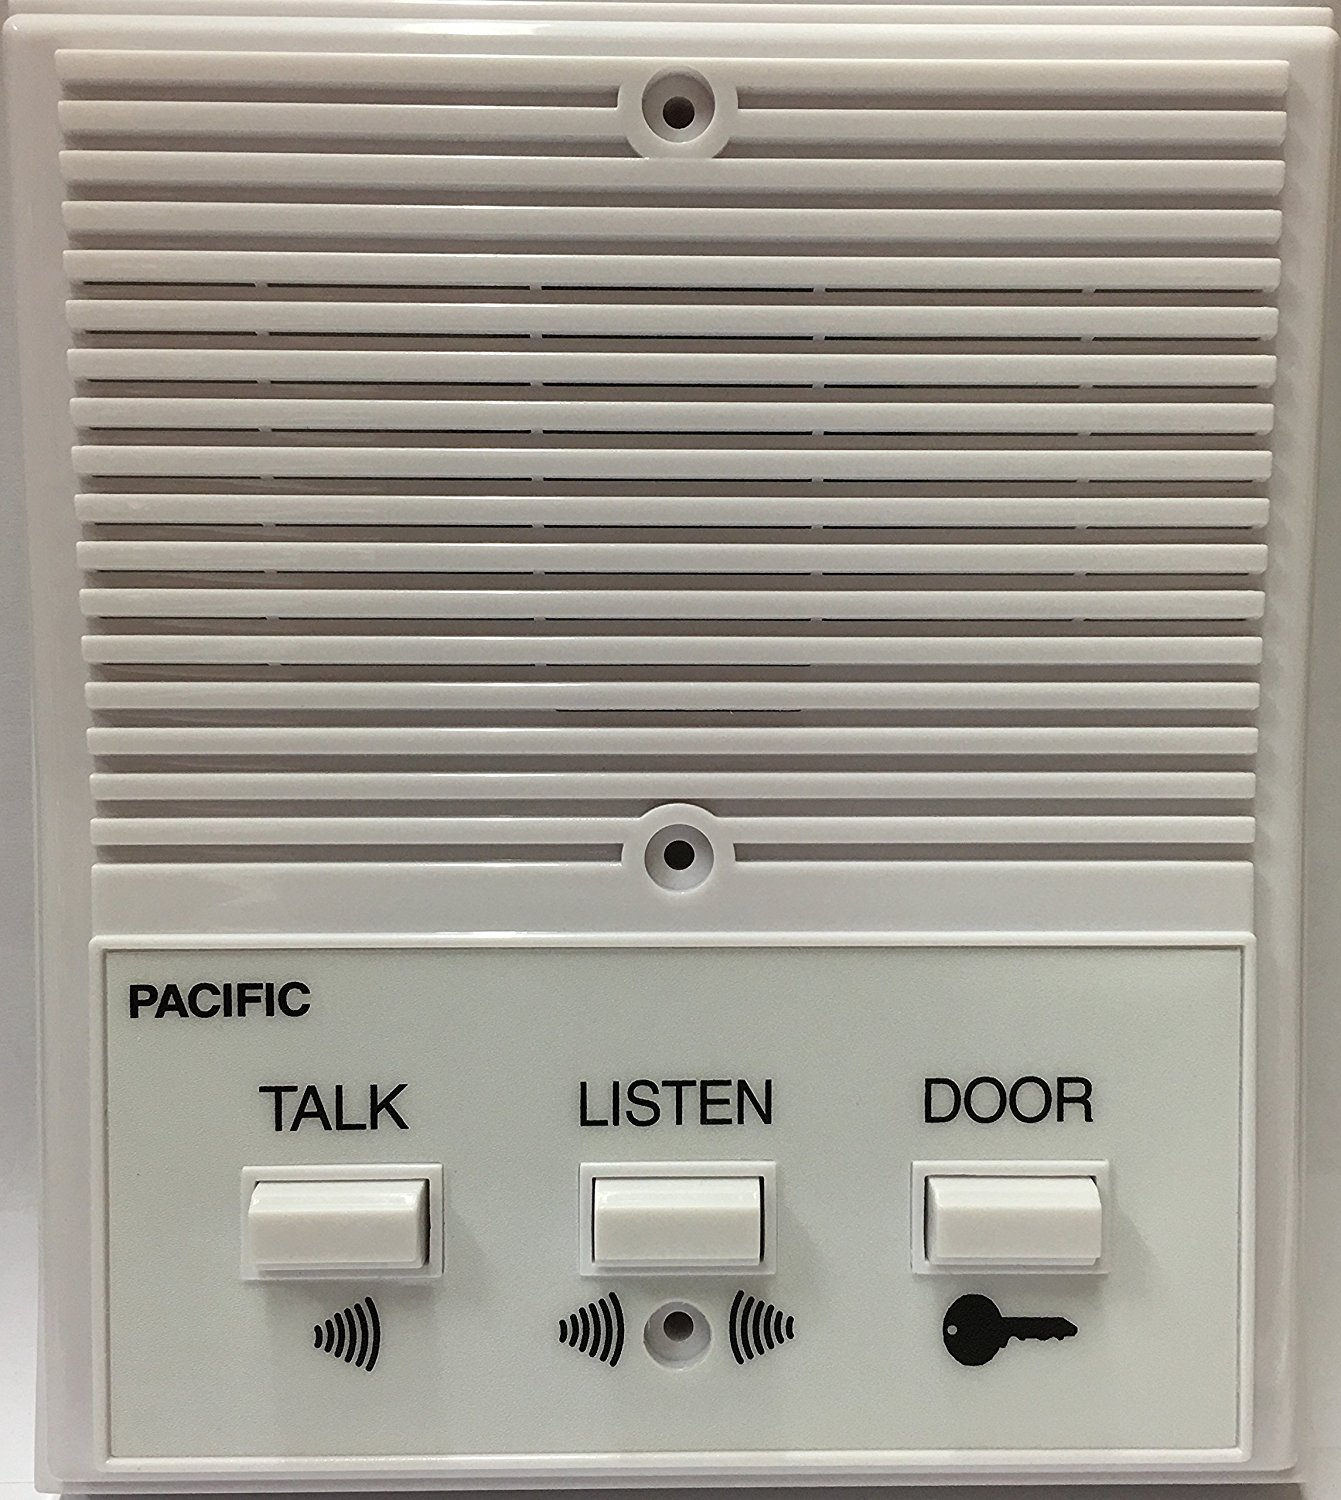 Pacific Electronics Apartment Intercom